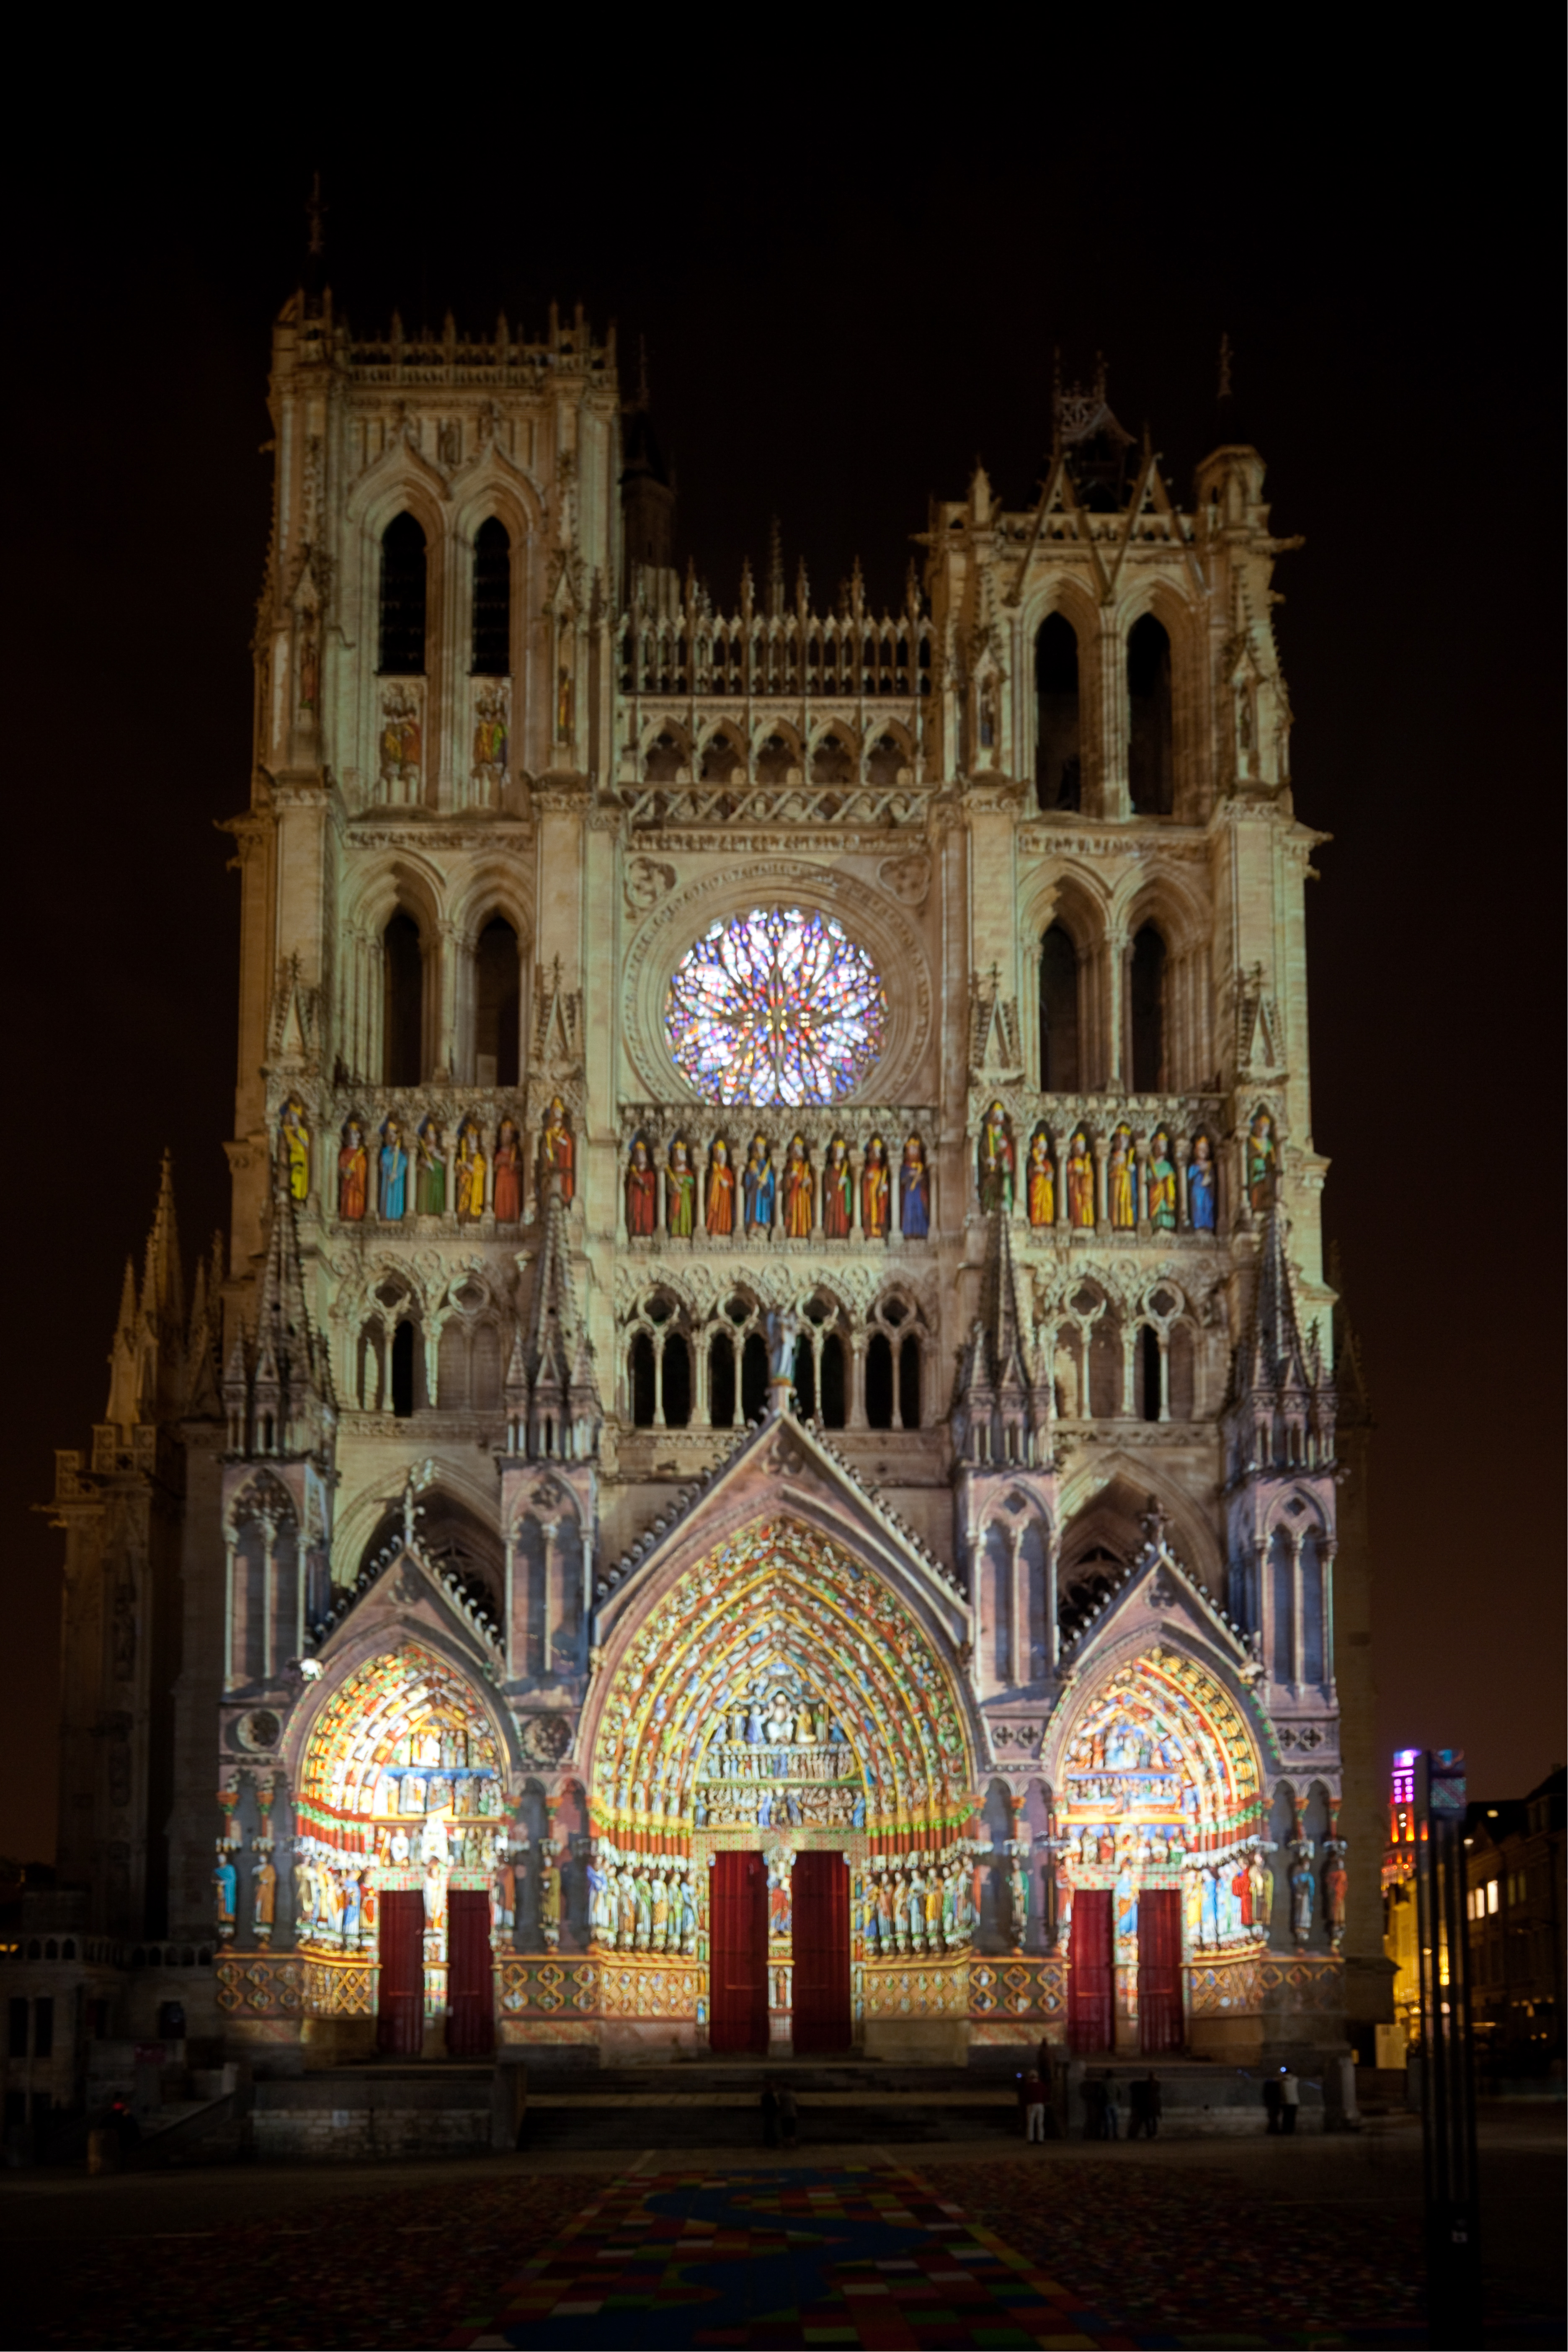 amiens-cathedral-west-facade-colored-lighting-2-of-2.jpg